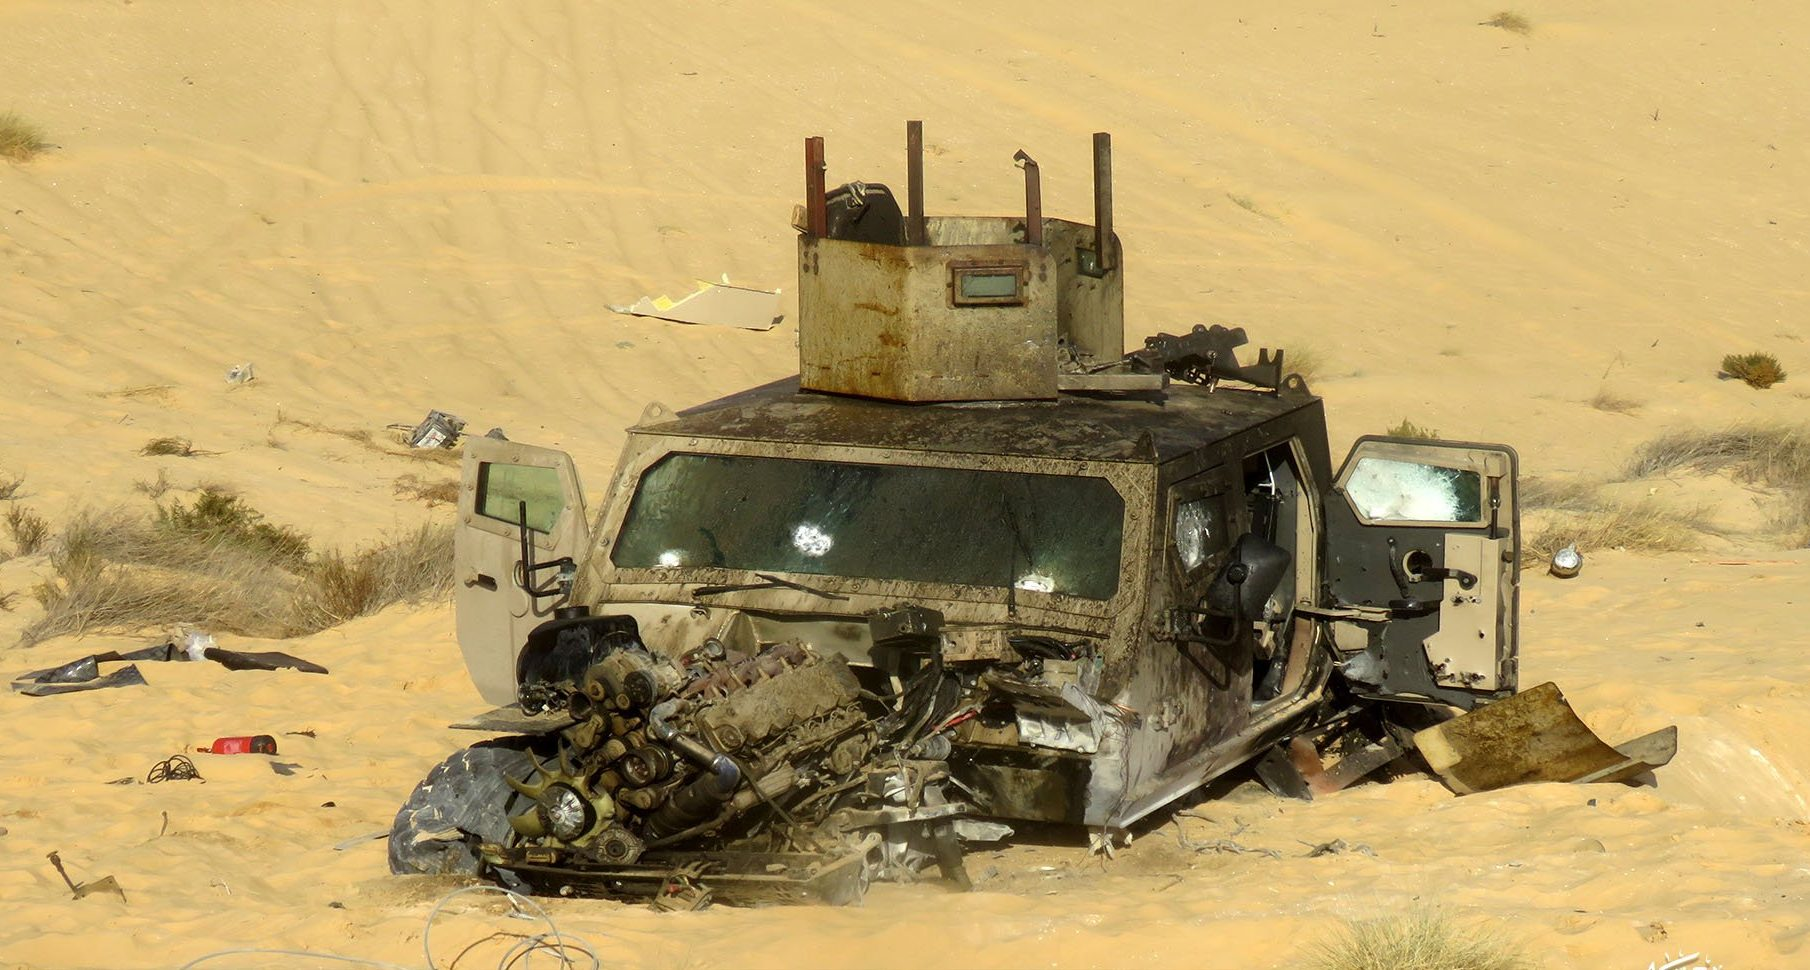 Ten Egyptian Service Members Killed, Injured In New Sinai Attack